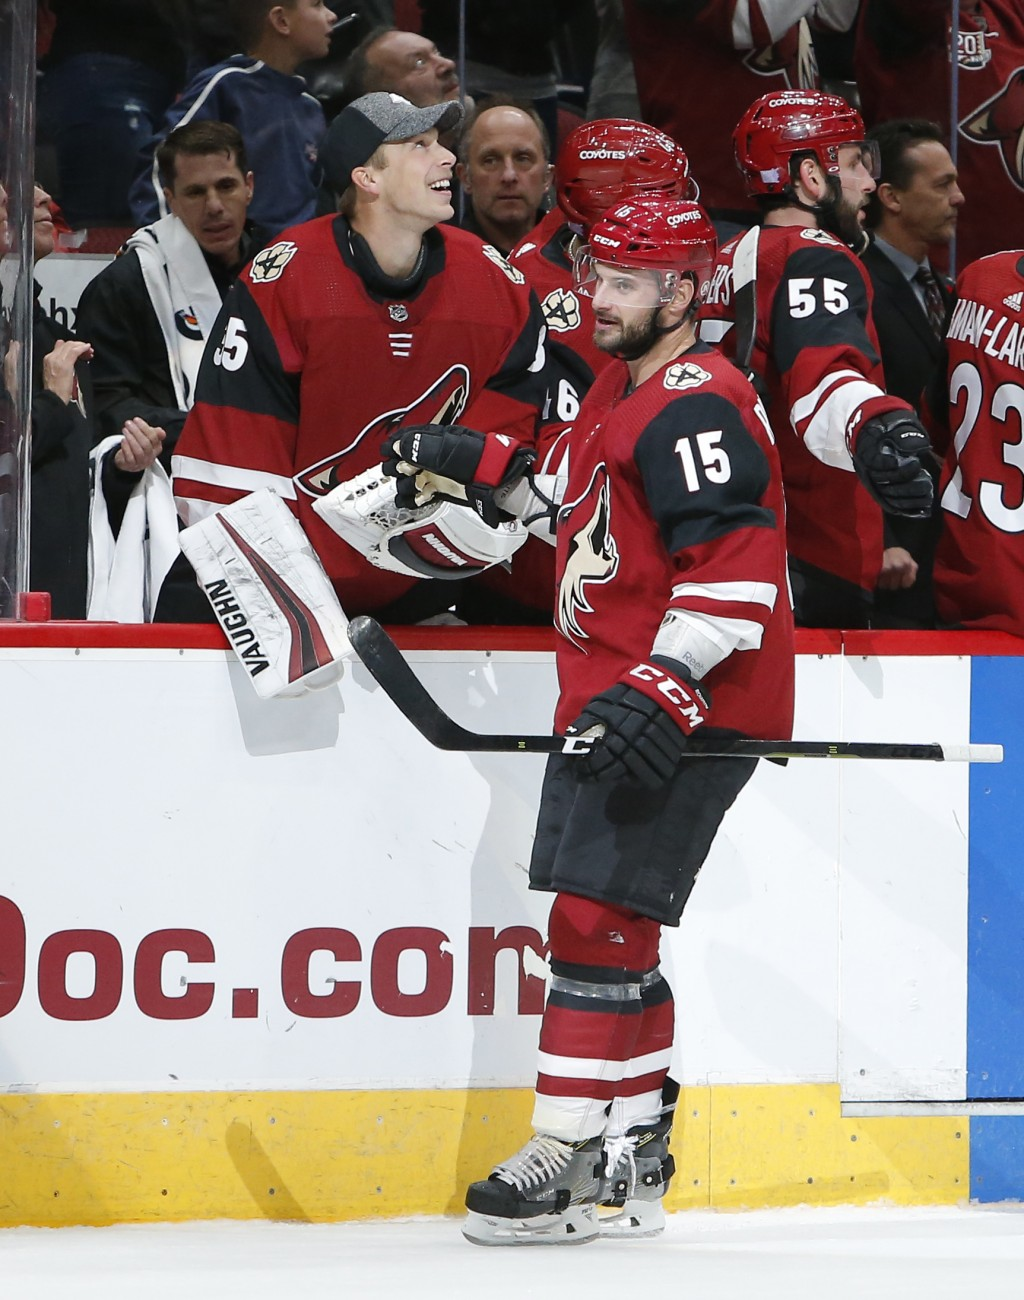 Arizona Coyotes center Brad Richardson (15) celebrates with teammates after scoring a goal against the Carolina Hurricanes during the first period of